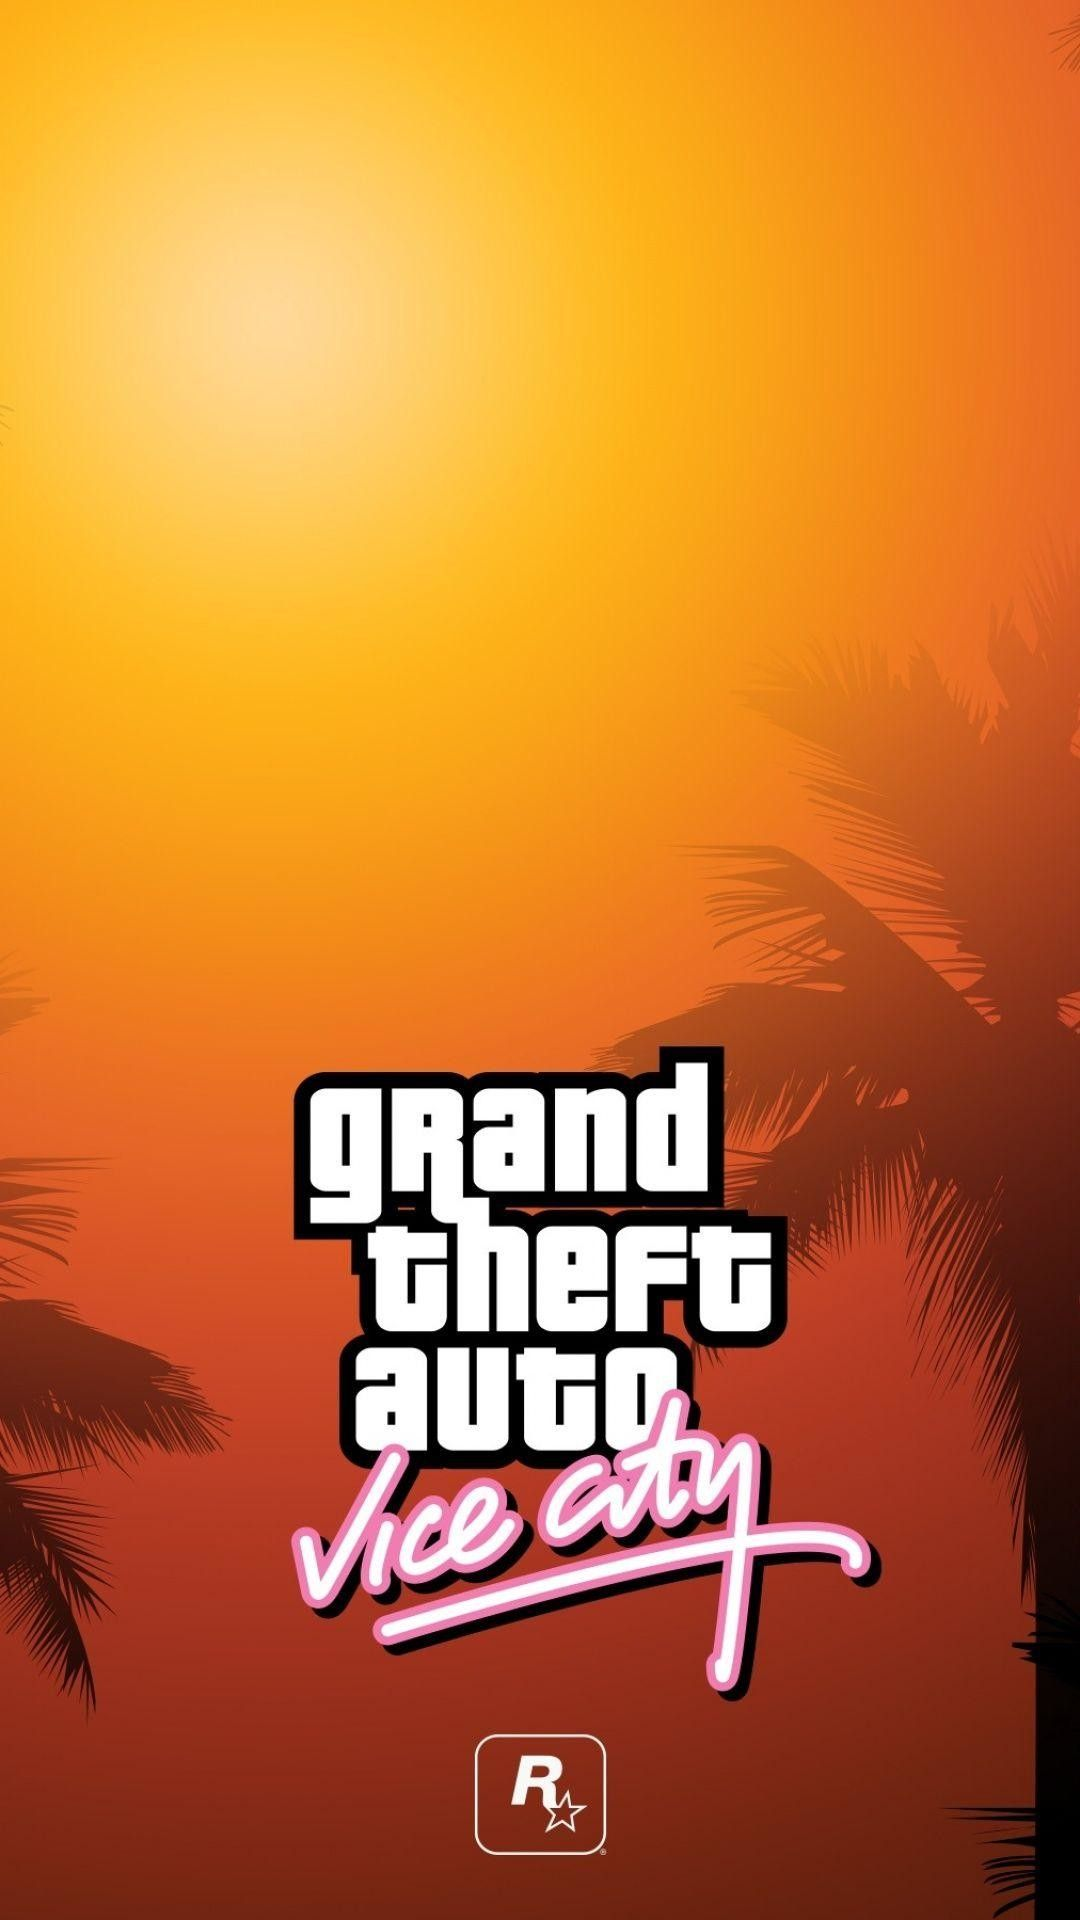 Pin By Darren Robey On Gta In 2020 City Wallpaper Grand Theft Auto Games City Iphone Wallpaper